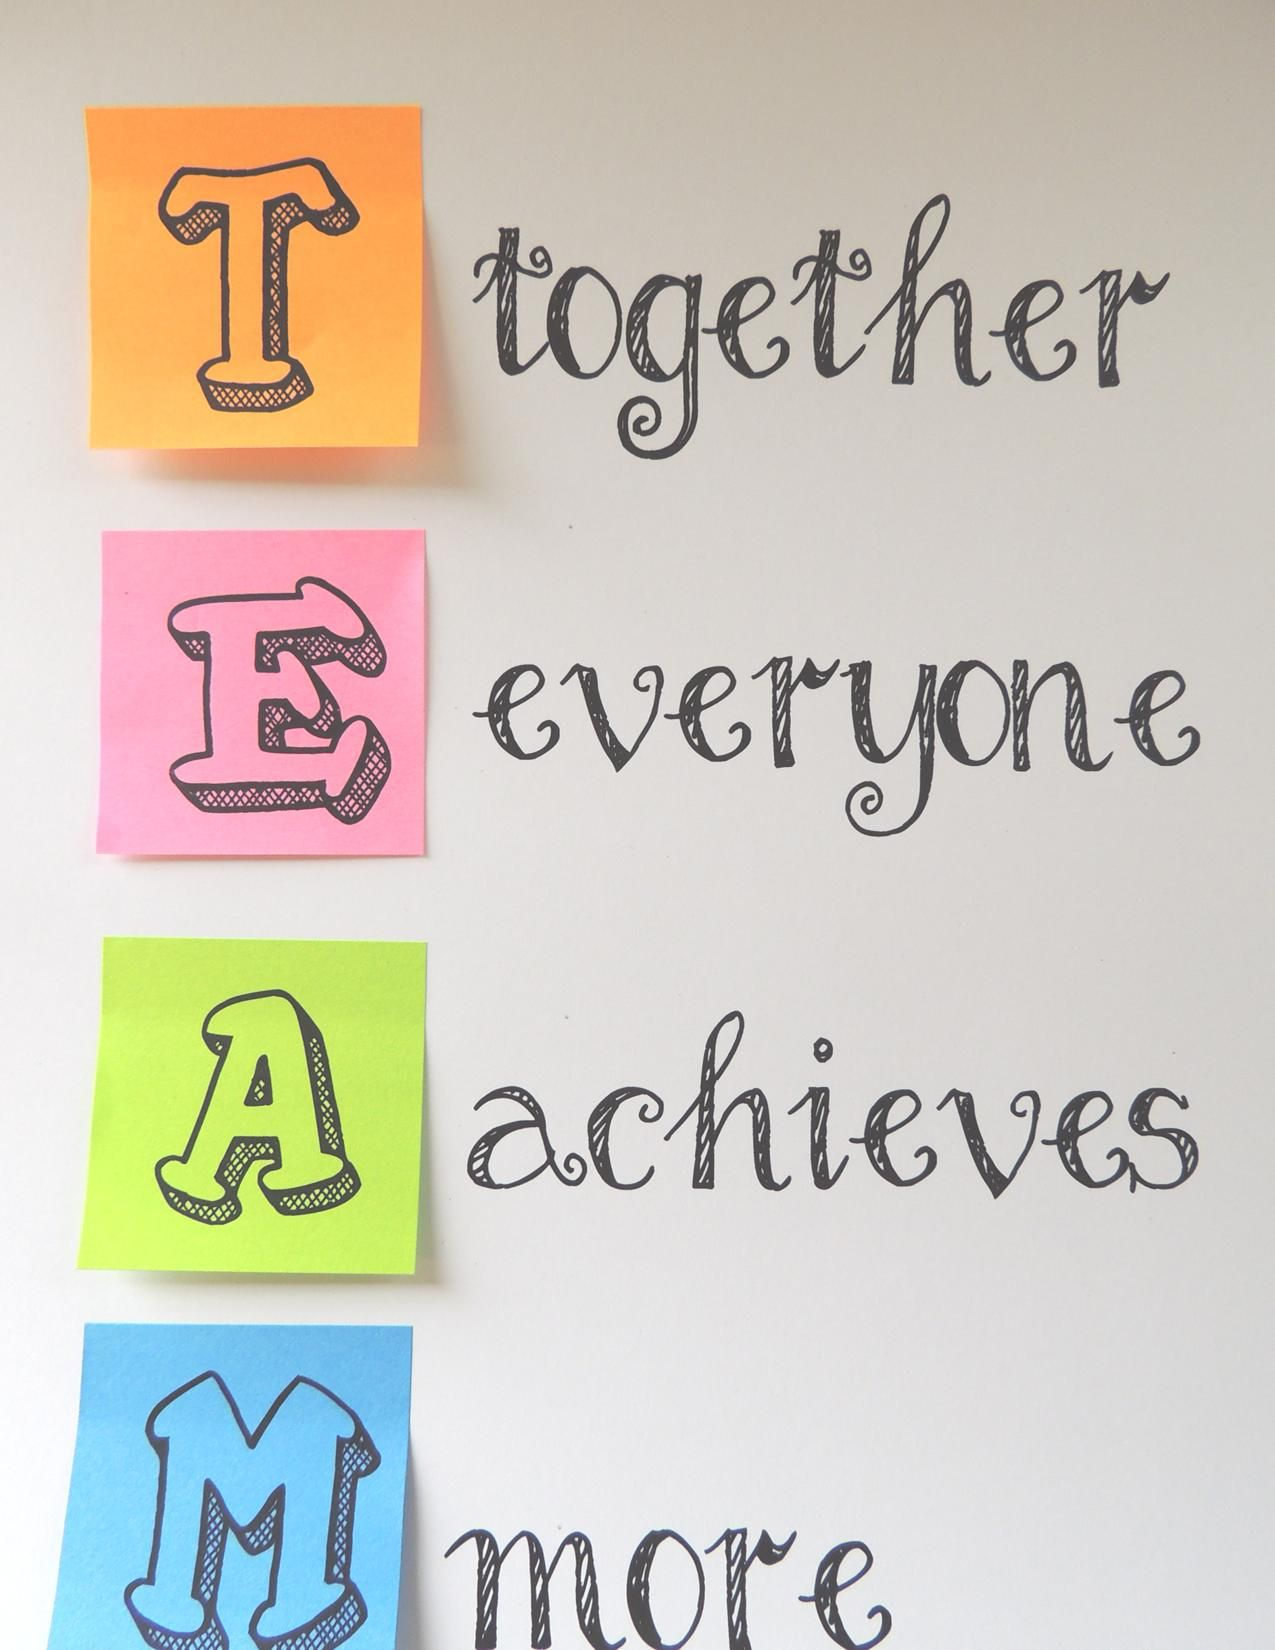 Teamwork Quotes For The Office 5 Ideas To Help Your Office Work as a TEAM | tt | Teamwork quotes  Teamwork Quotes For The Office